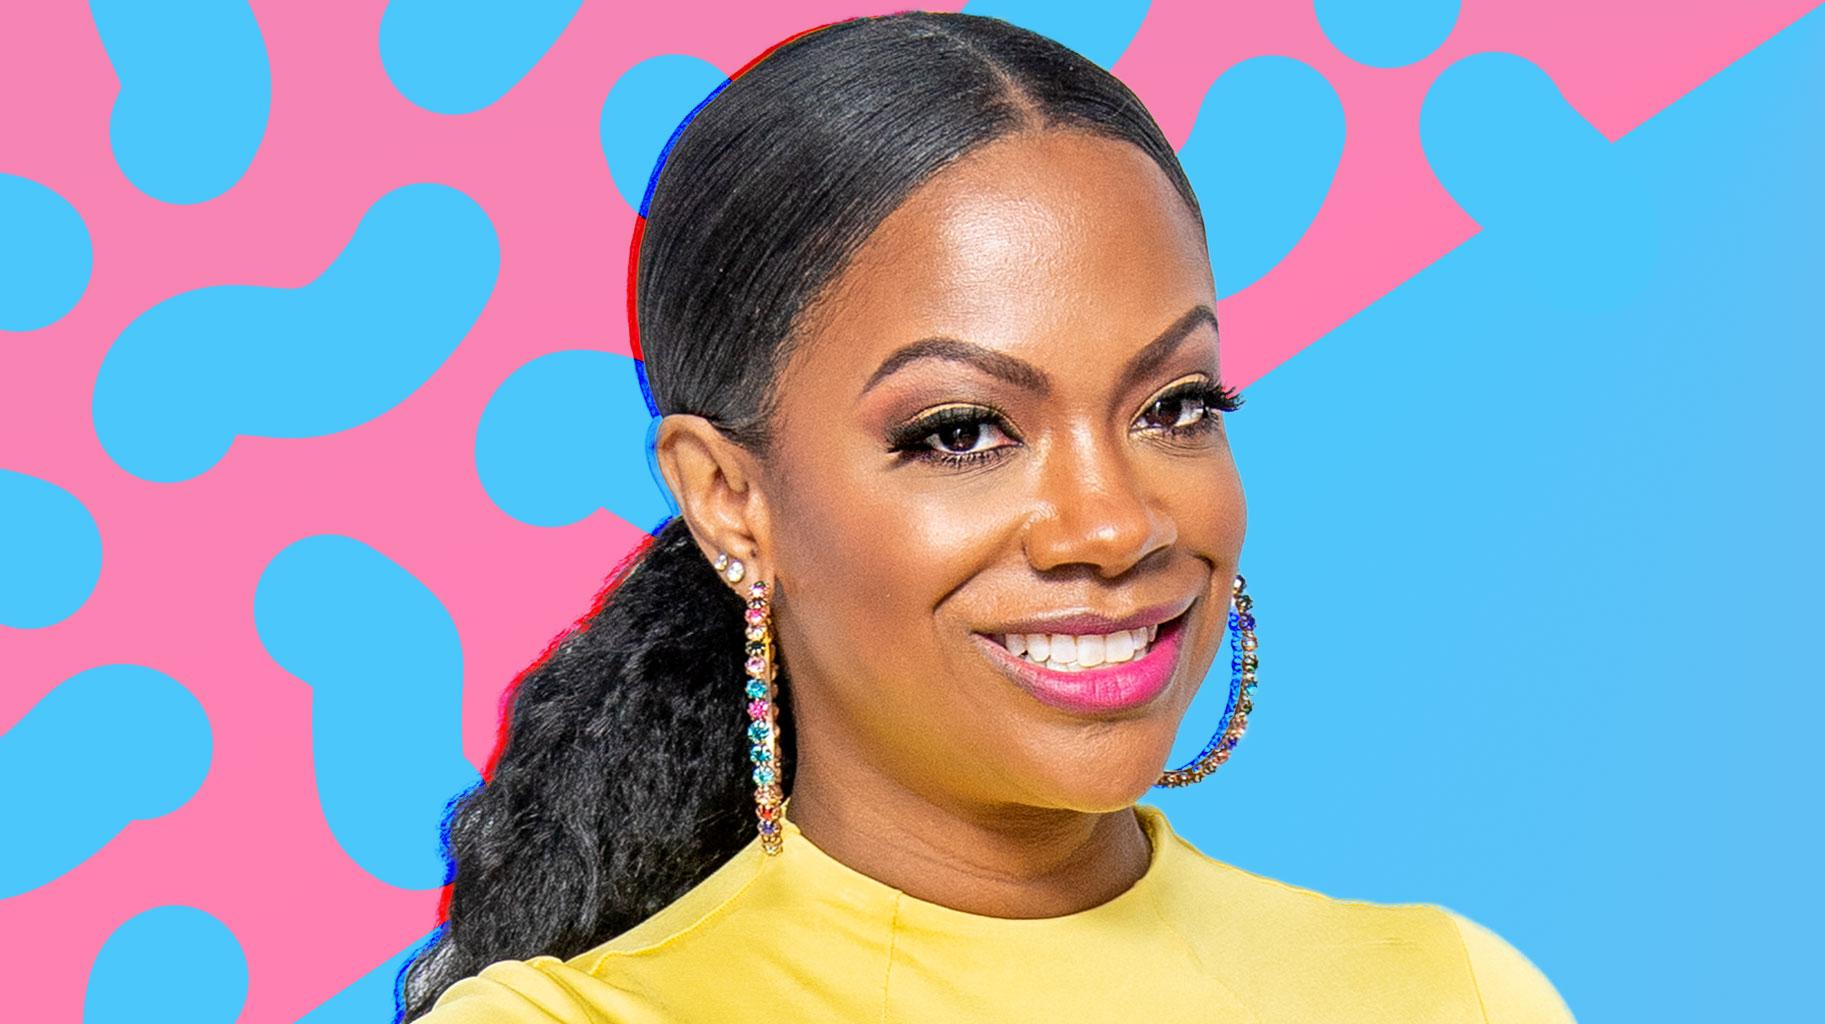 Kandi Burruss Urges People To 'Stay Home' In Spite Of Georgia Ending The Quarantine - Insists It's 'Not Safe' Yet!